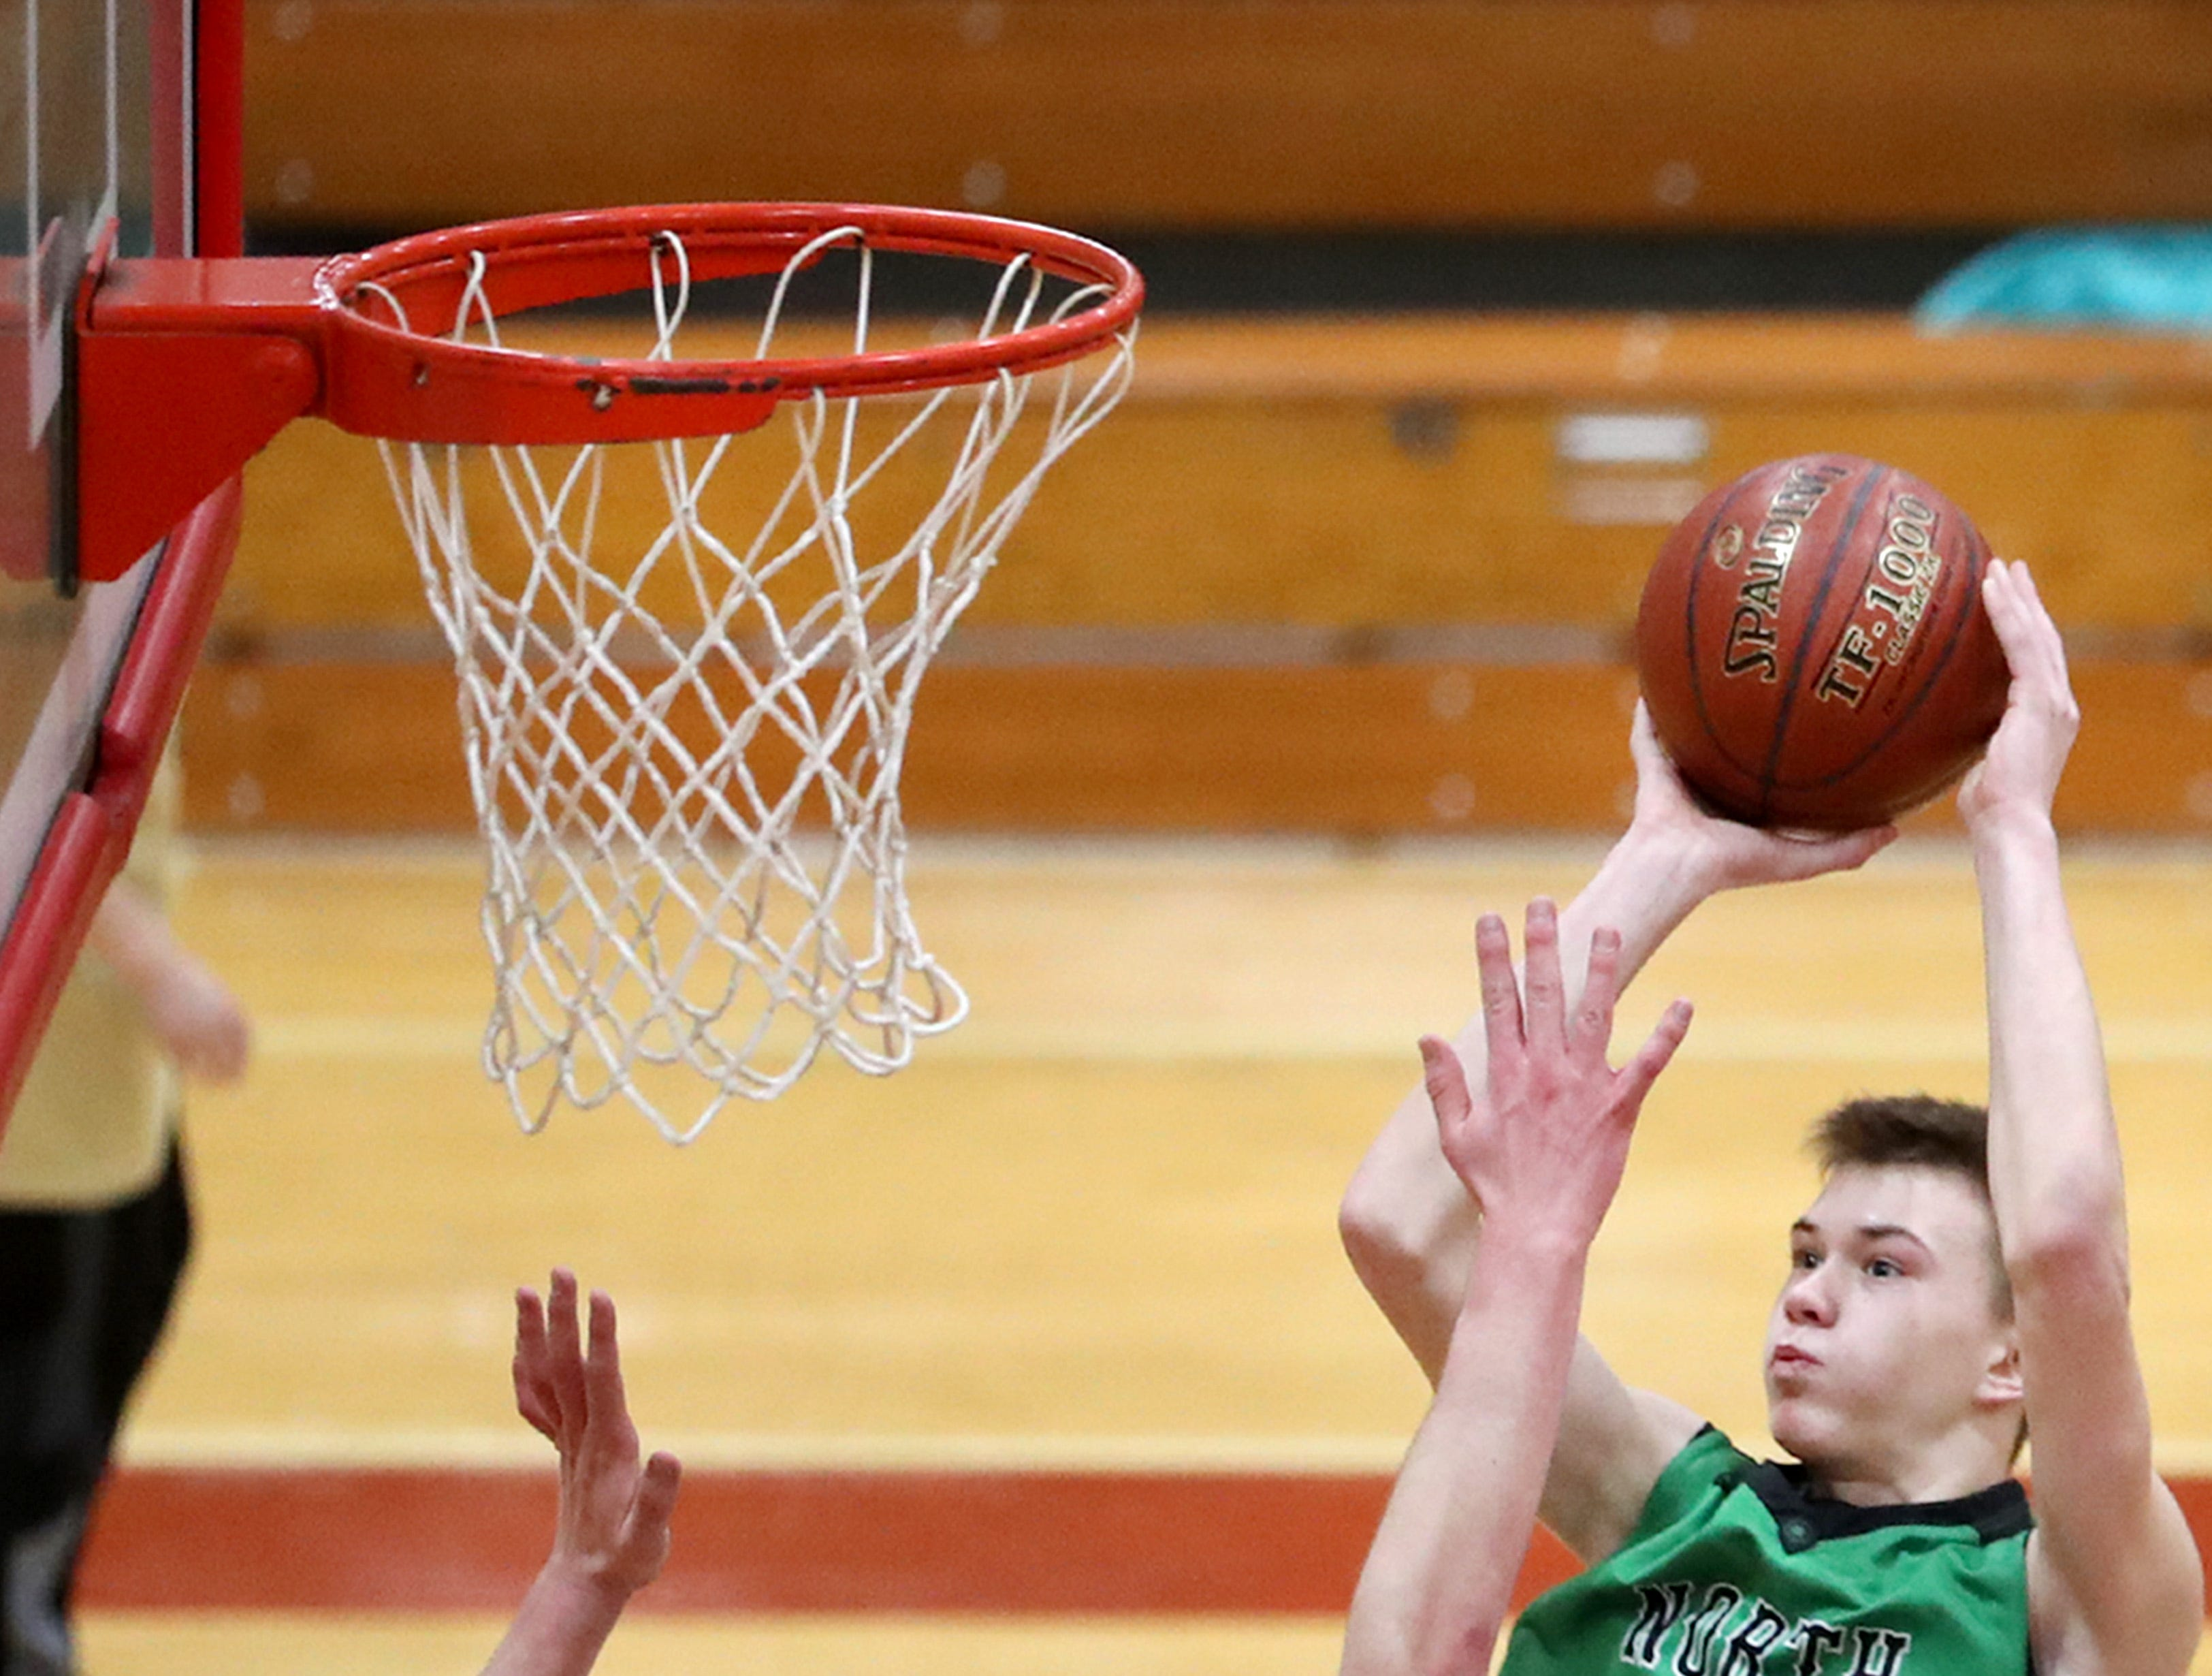 Oshkosh North High SchoolÕs Brennon Colburn takes a shot at the basket while being covered by Neenah High SchoolÕs Ethan Parker Friday, Jan. 18, 2019, in Neenah, Wis. Oshkosh North High School defeated Neenah High School 63-60.